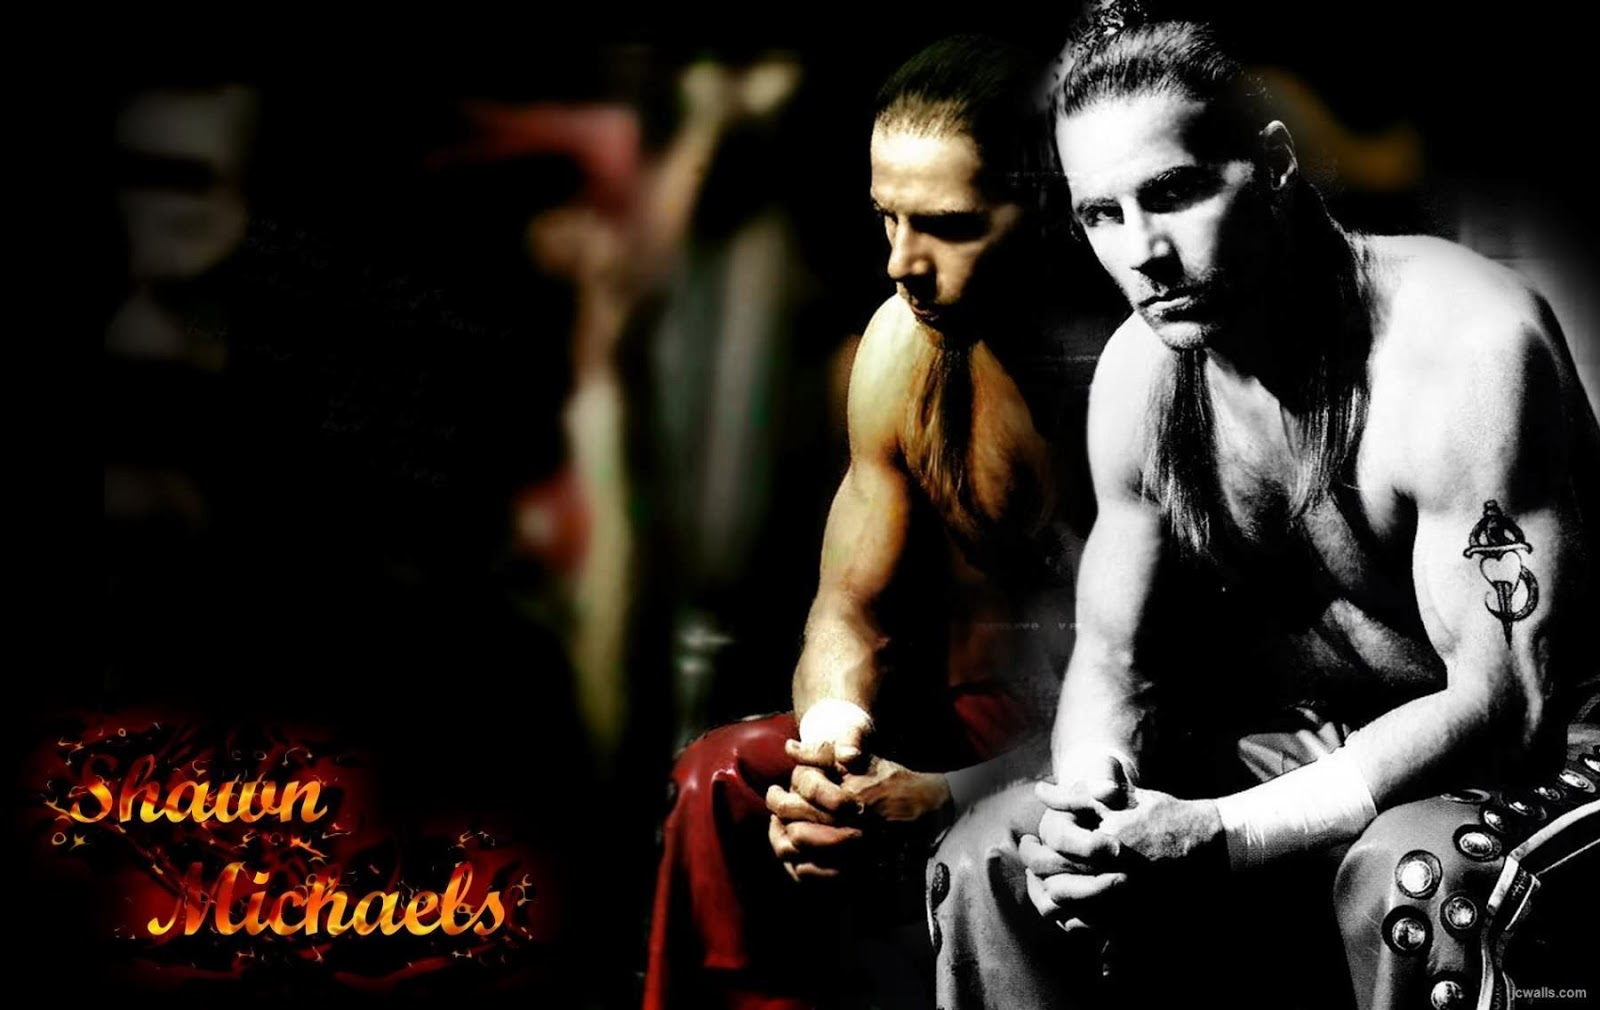 All Wallpapers WWE Shawn Michael hd New Nice Wallpapers 2013 1600x1010